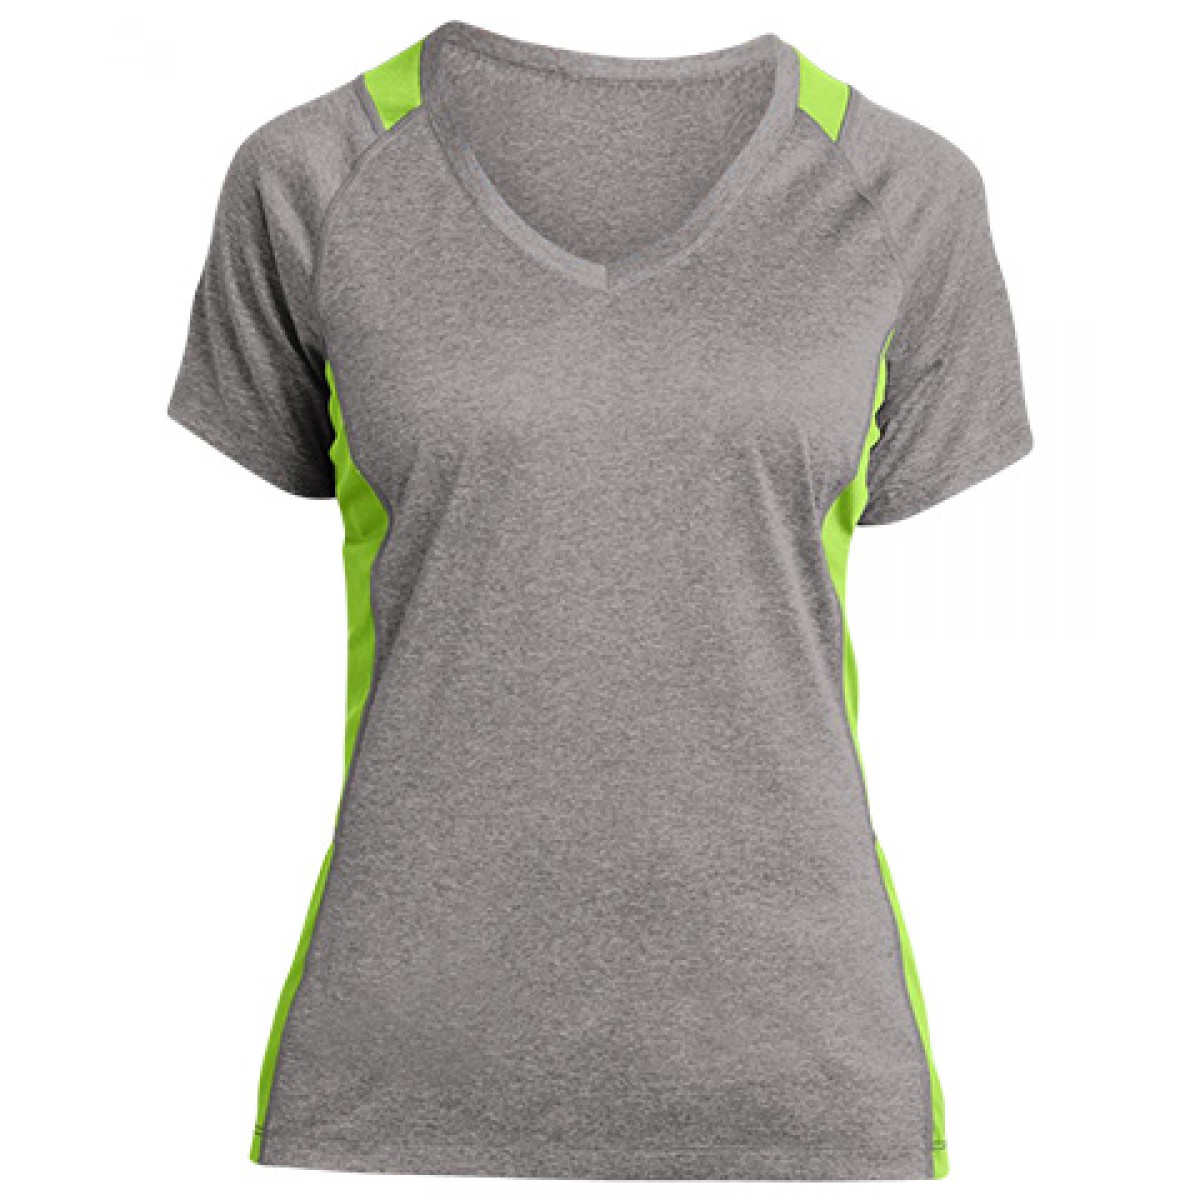 Ladies' Heather Colorblock Contender V-Neck Tee-Heather/Lime-S